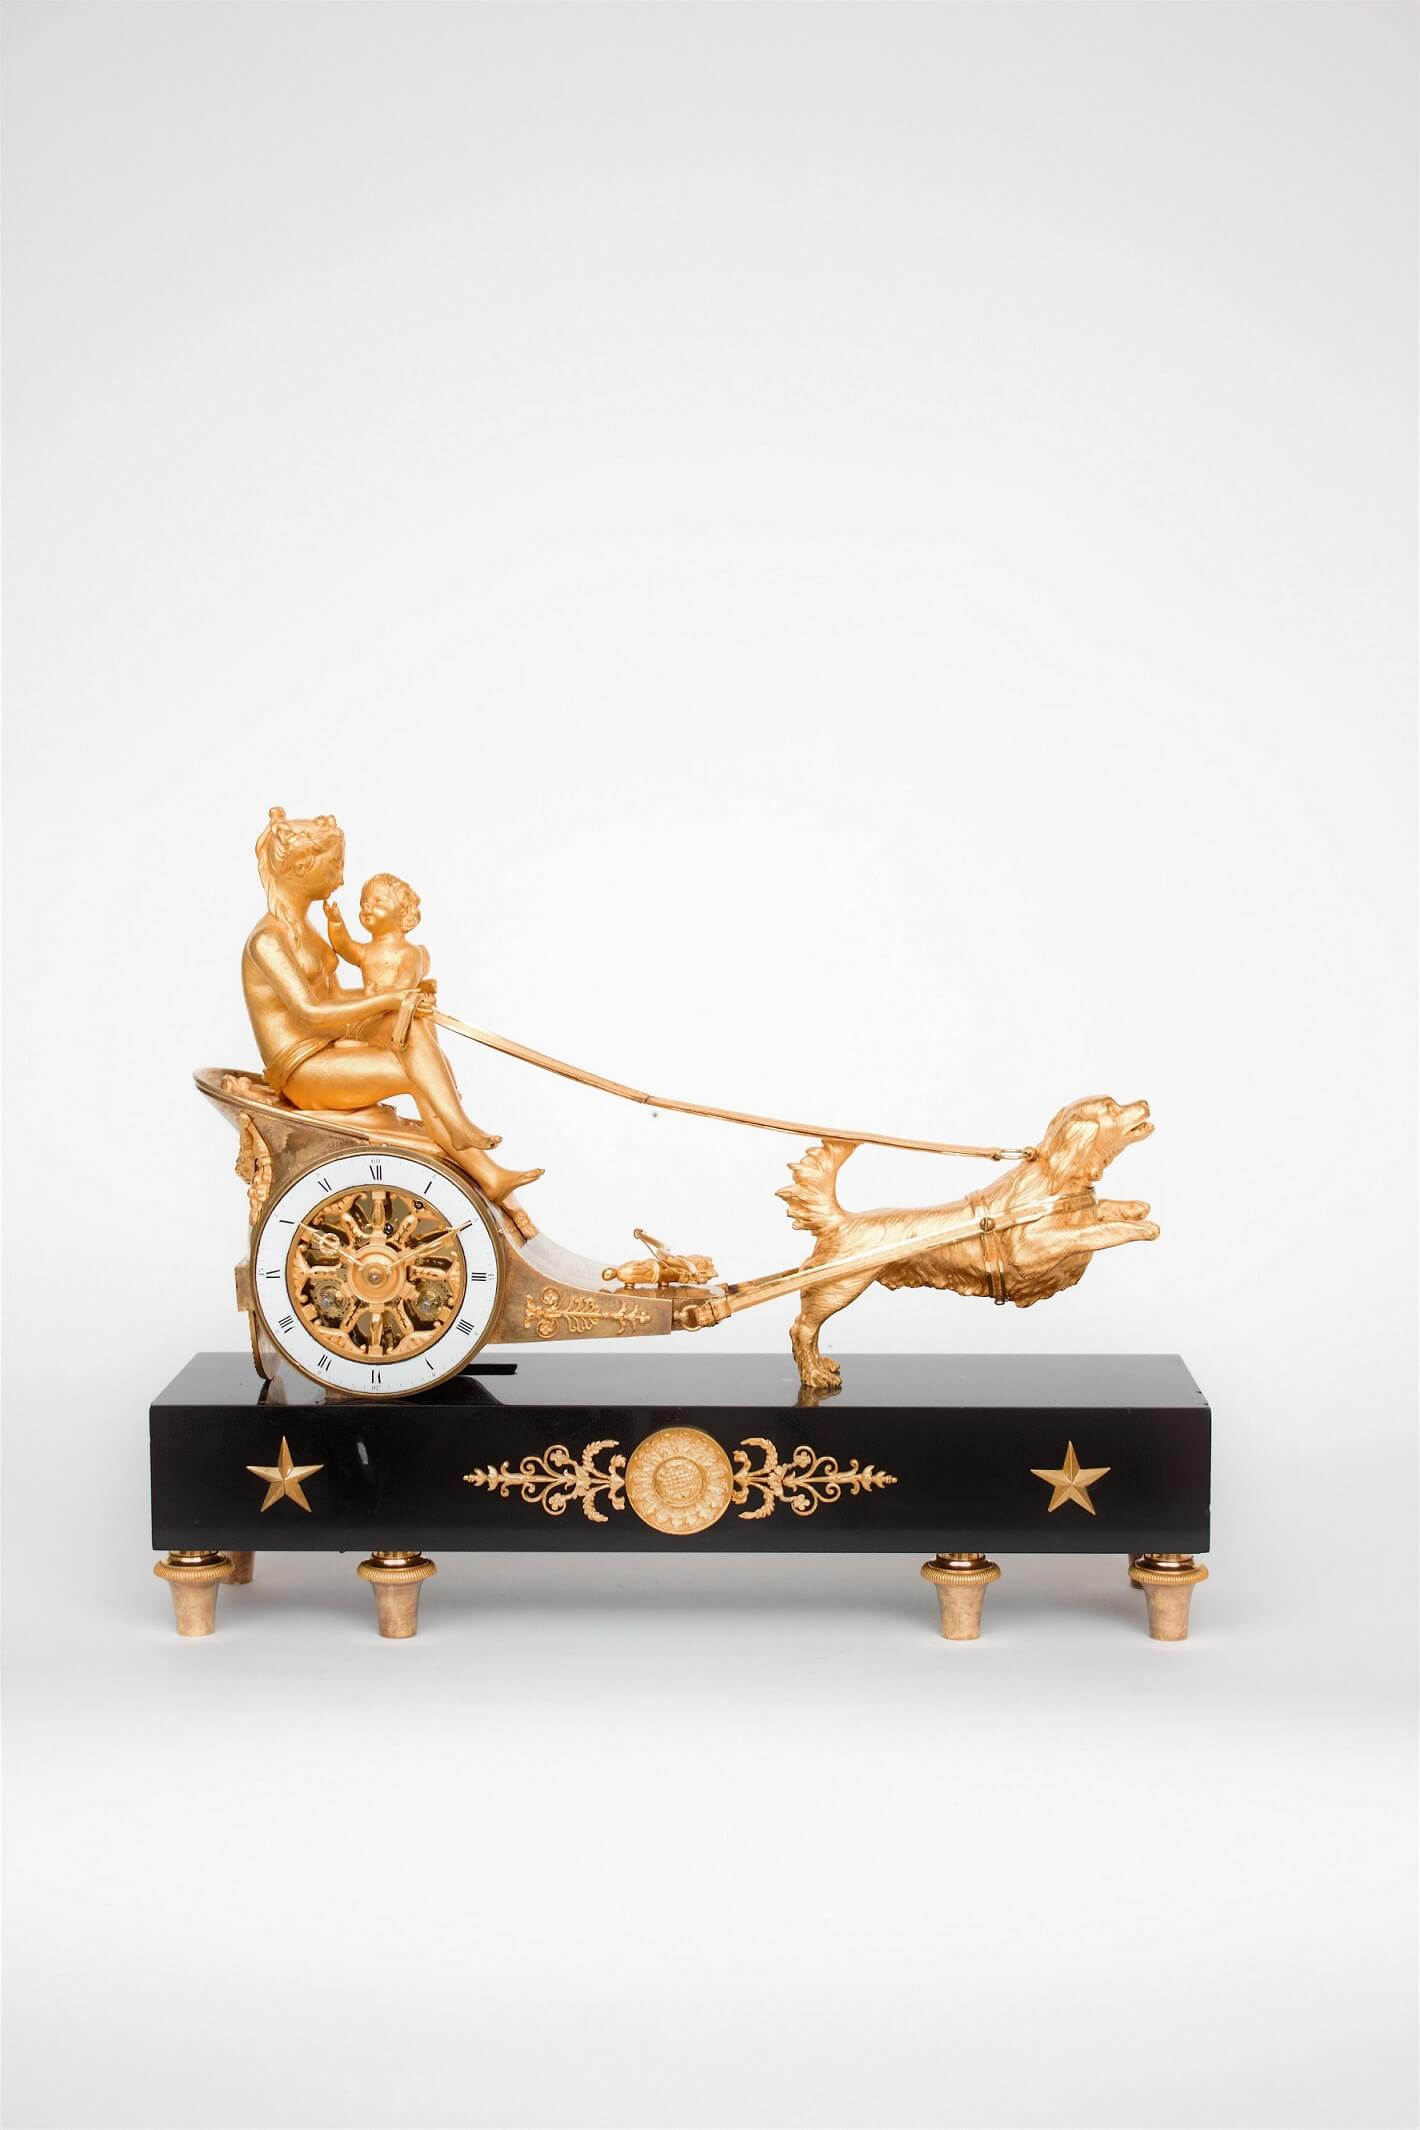 French-empire-ormolu-gilt-bronze-sculptural-chariot-striking-antique-mantel-clock-cupid-dog-